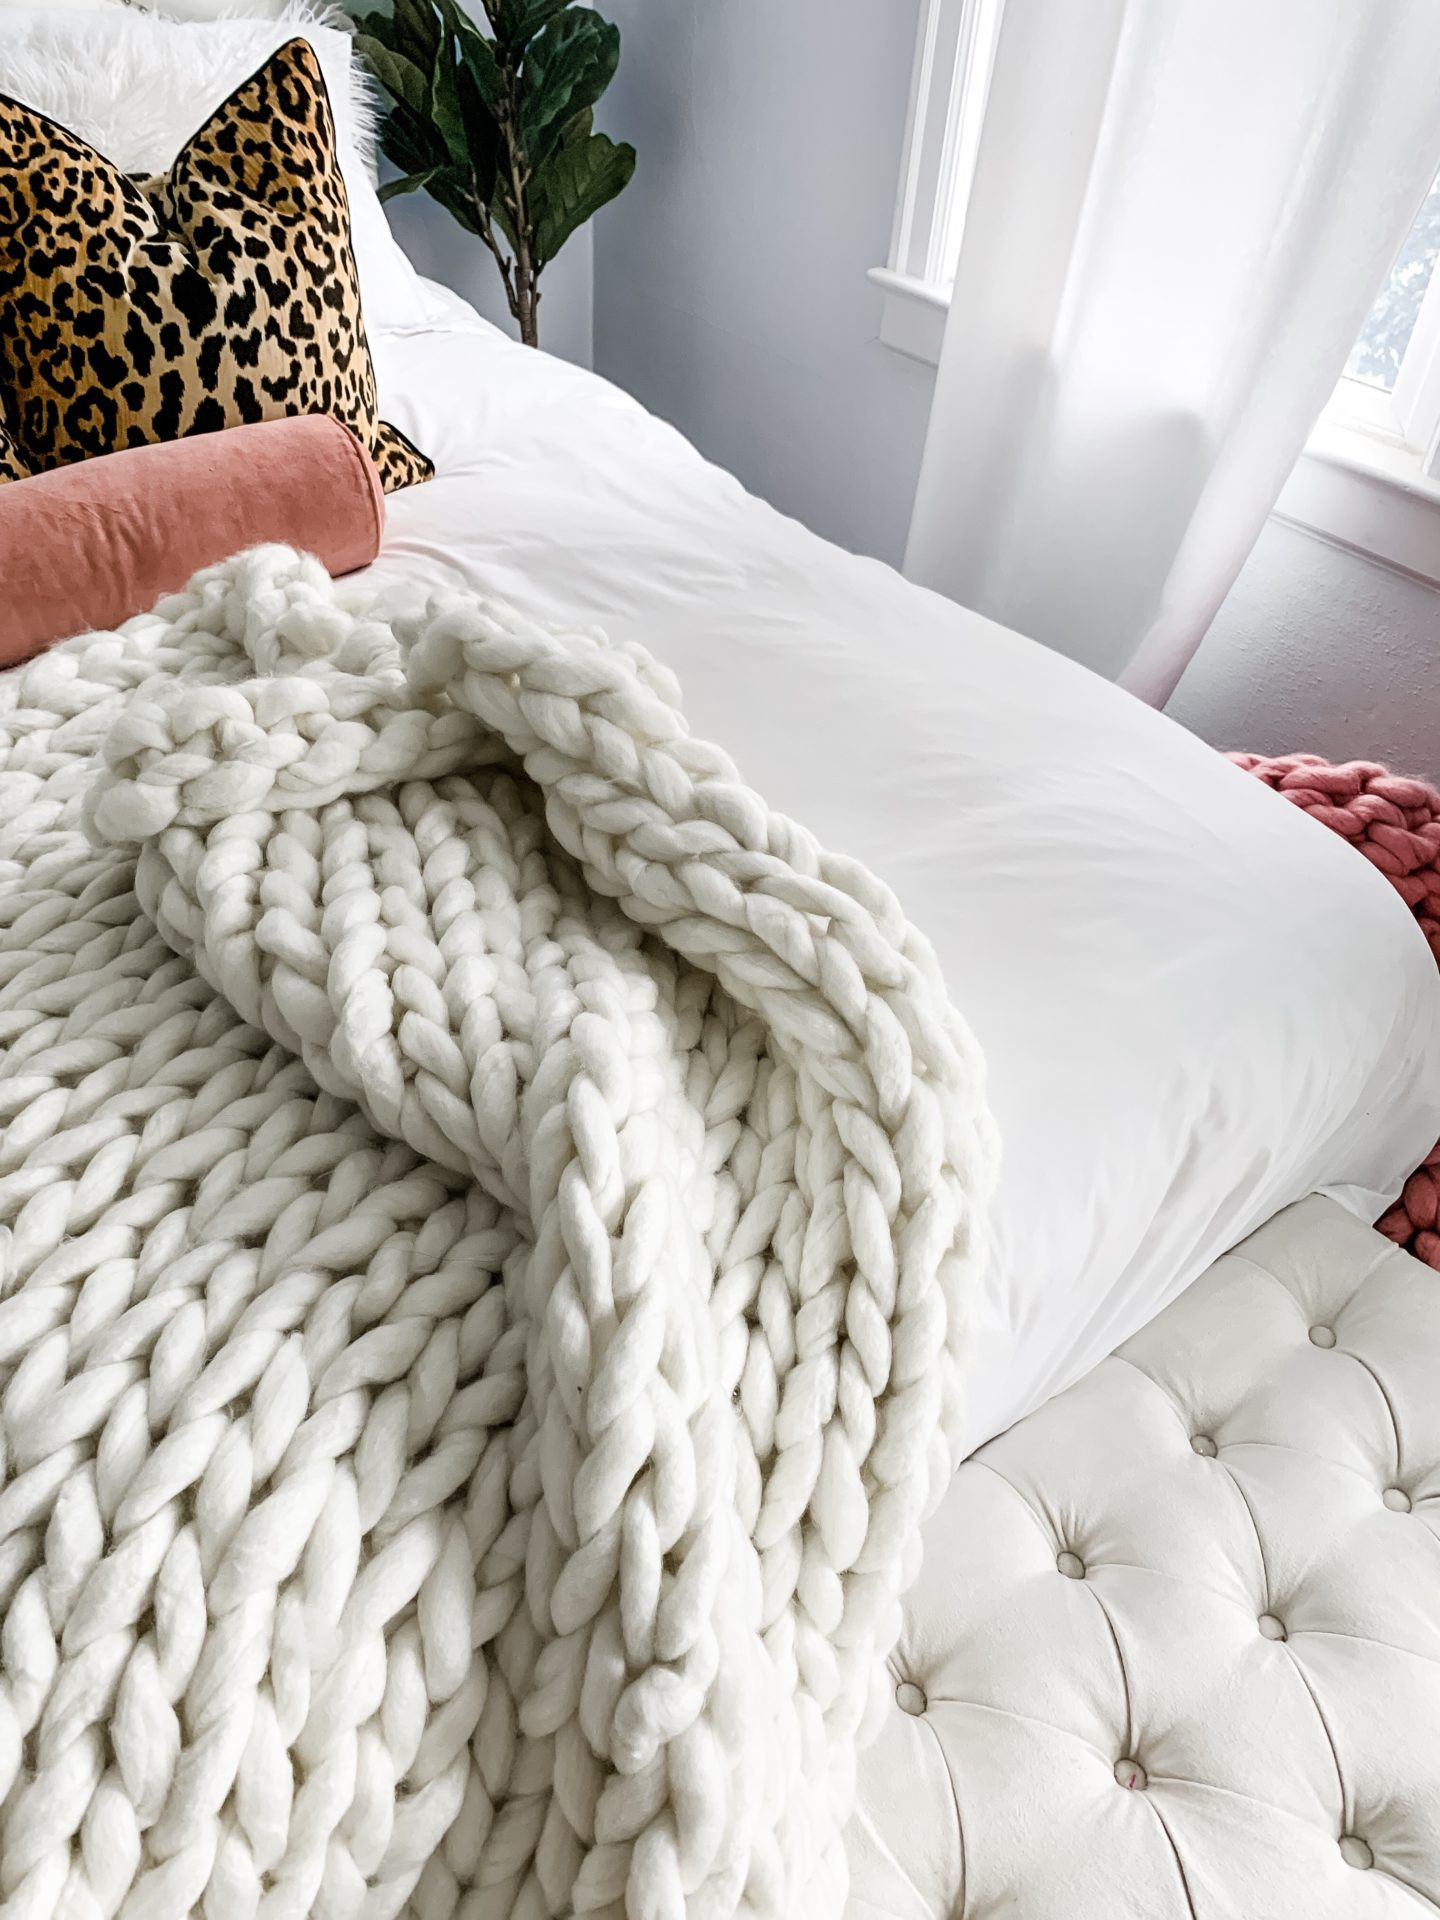 Diy arm knit blanket for 12 in 45 minutes topknots and